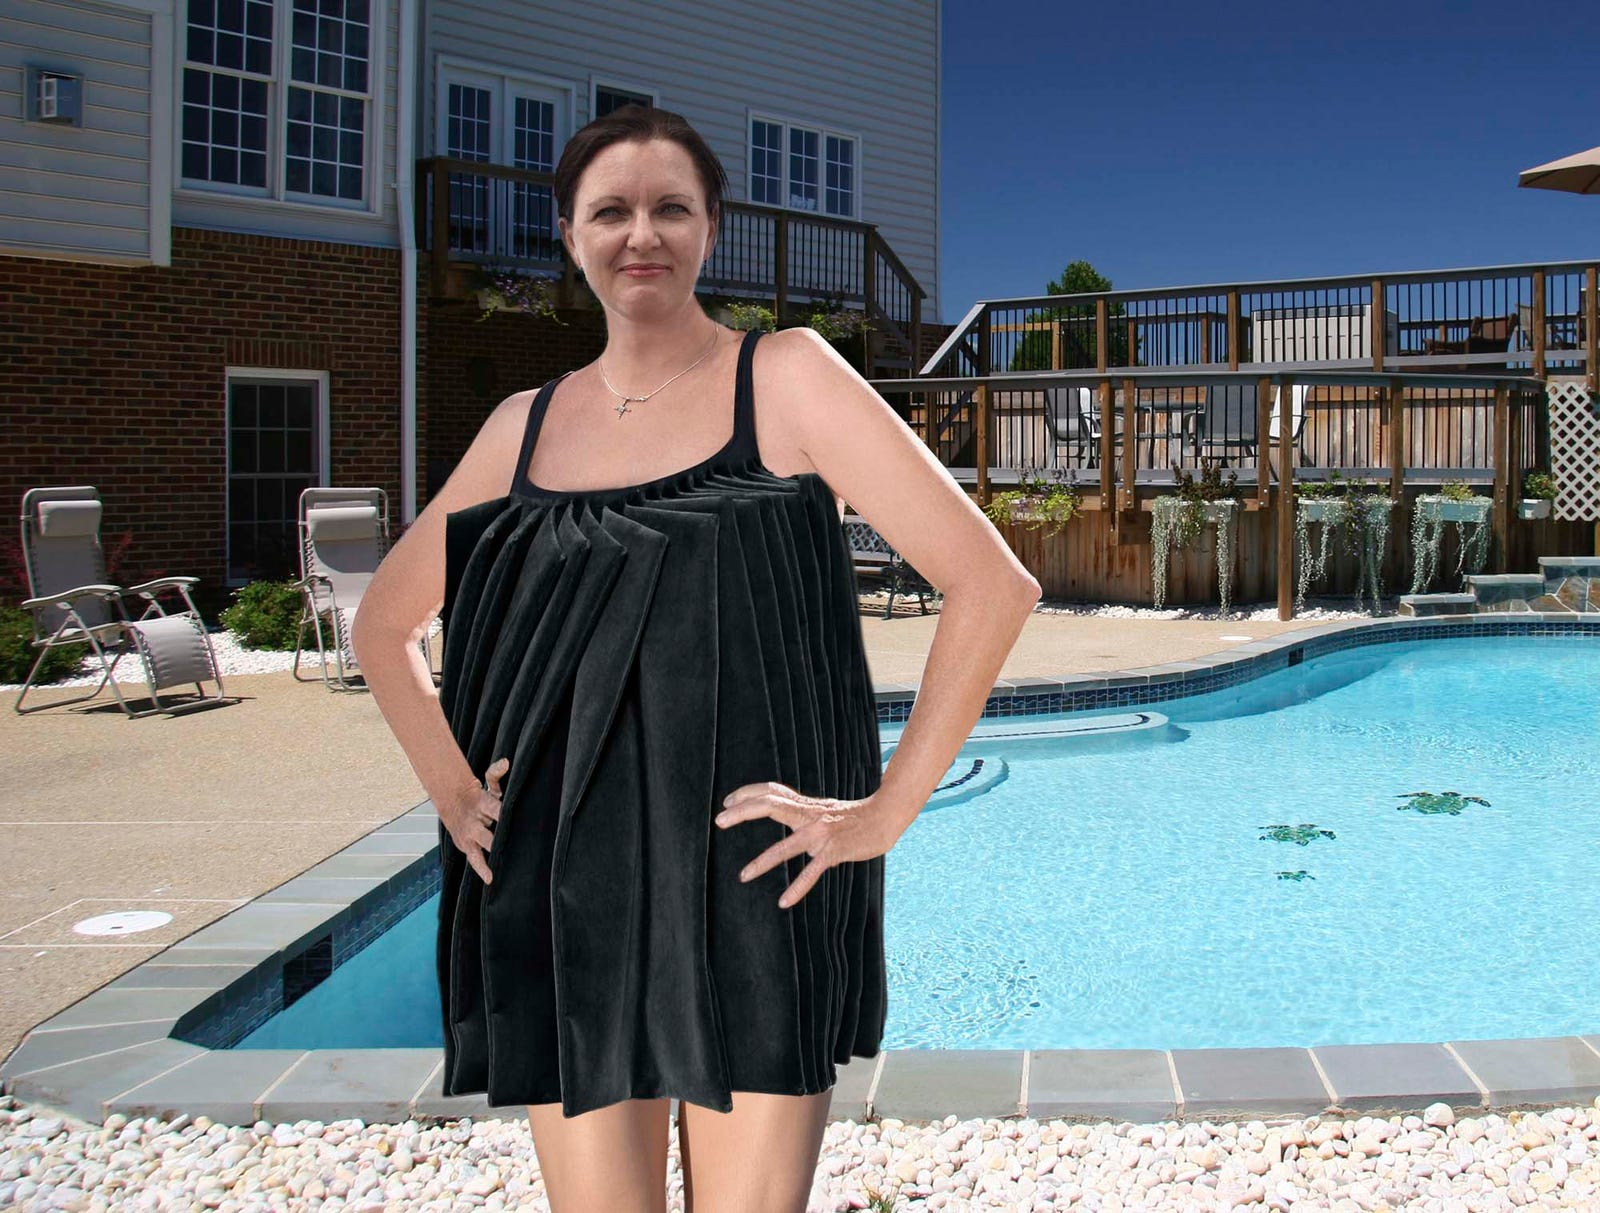 Mom's Bathing Suit Just One Giant, Body-Eclipsing Ruffle